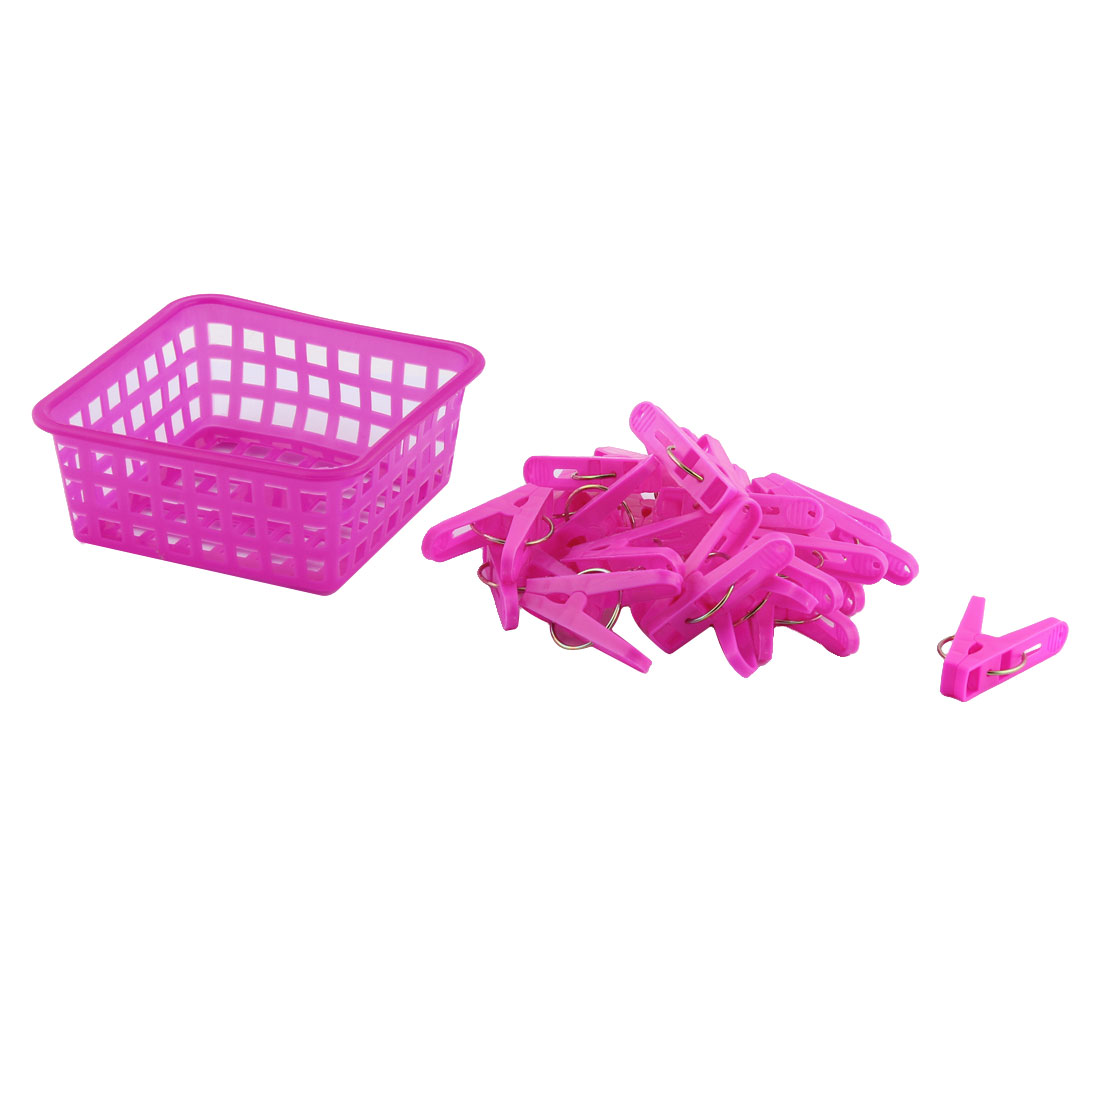 Home Clothes Hanging Pegs Clothespins Hanger Clips Fuchsia 20pcs w Storage Basket